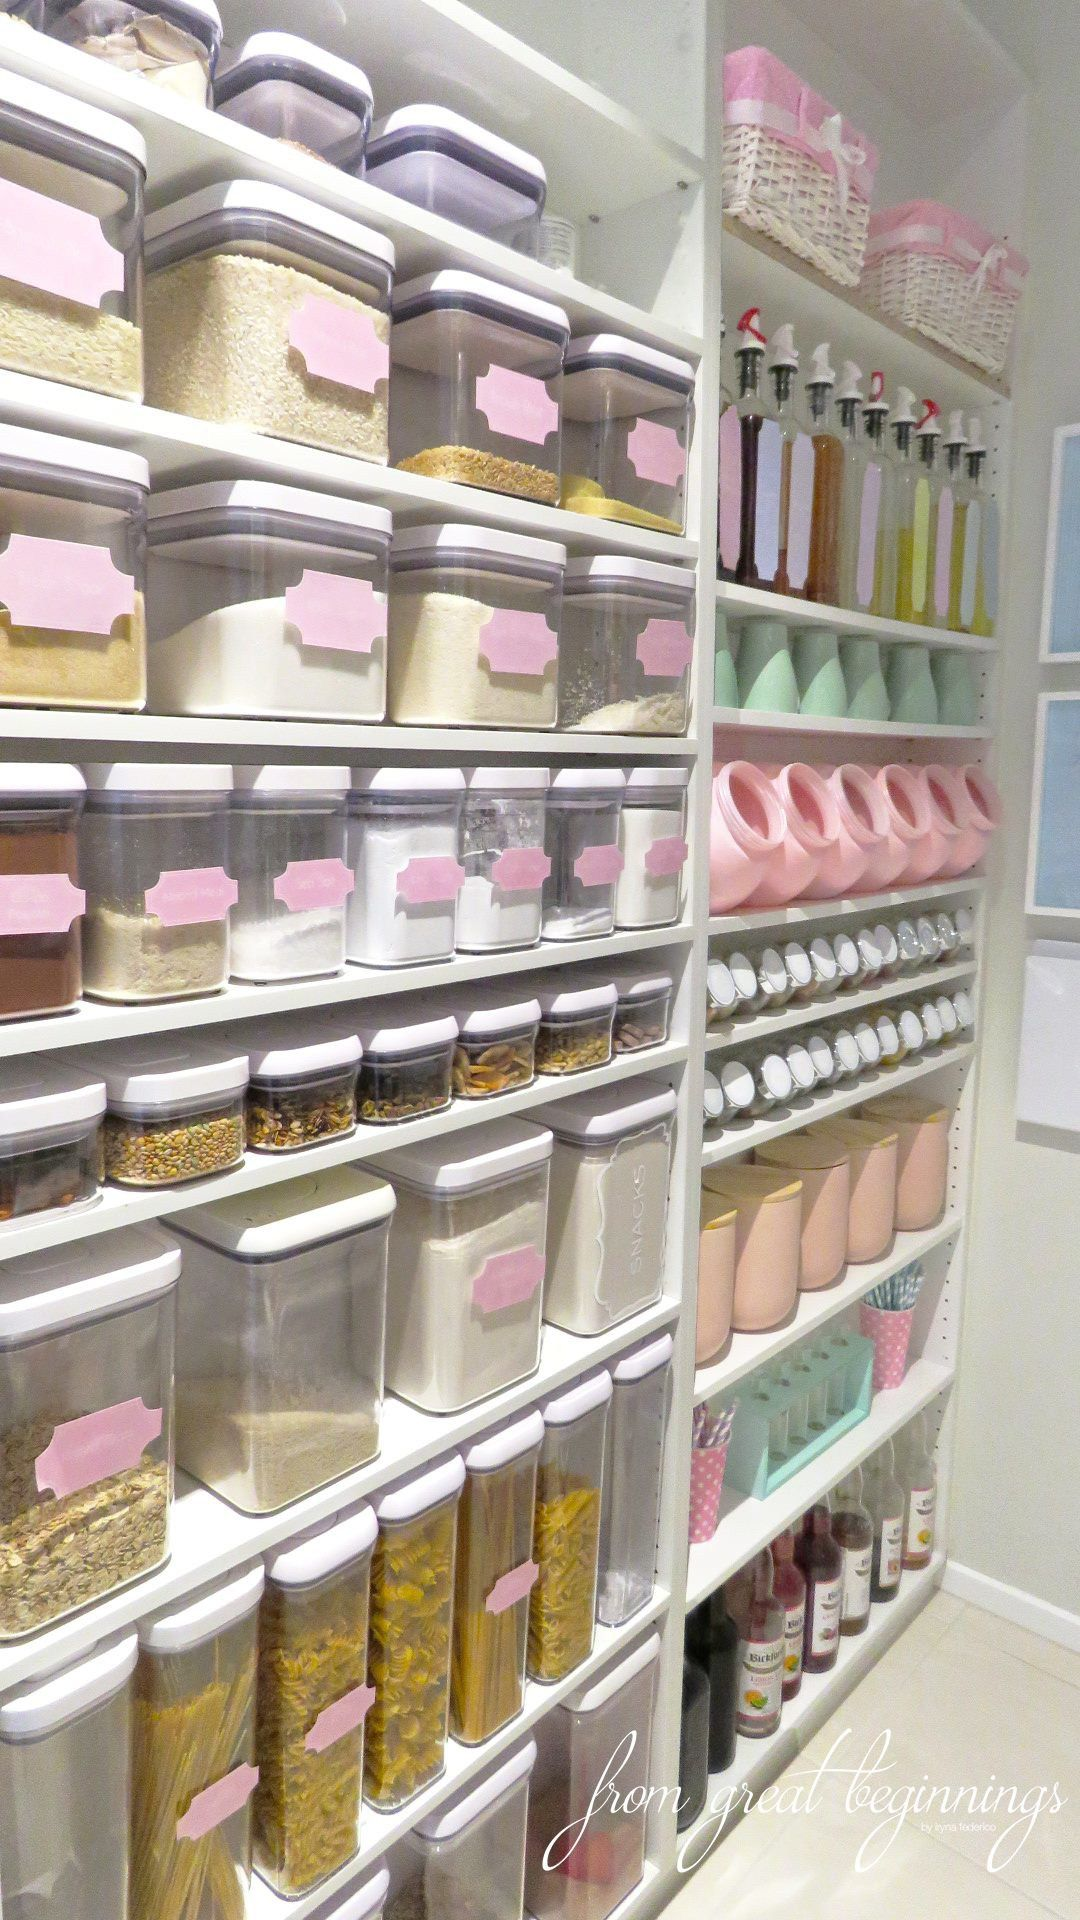 designing my walk in pantry pantry kitchen organization pantry pantry organization kitchen. Black Bedroom Furniture Sets. Home Design Ideas